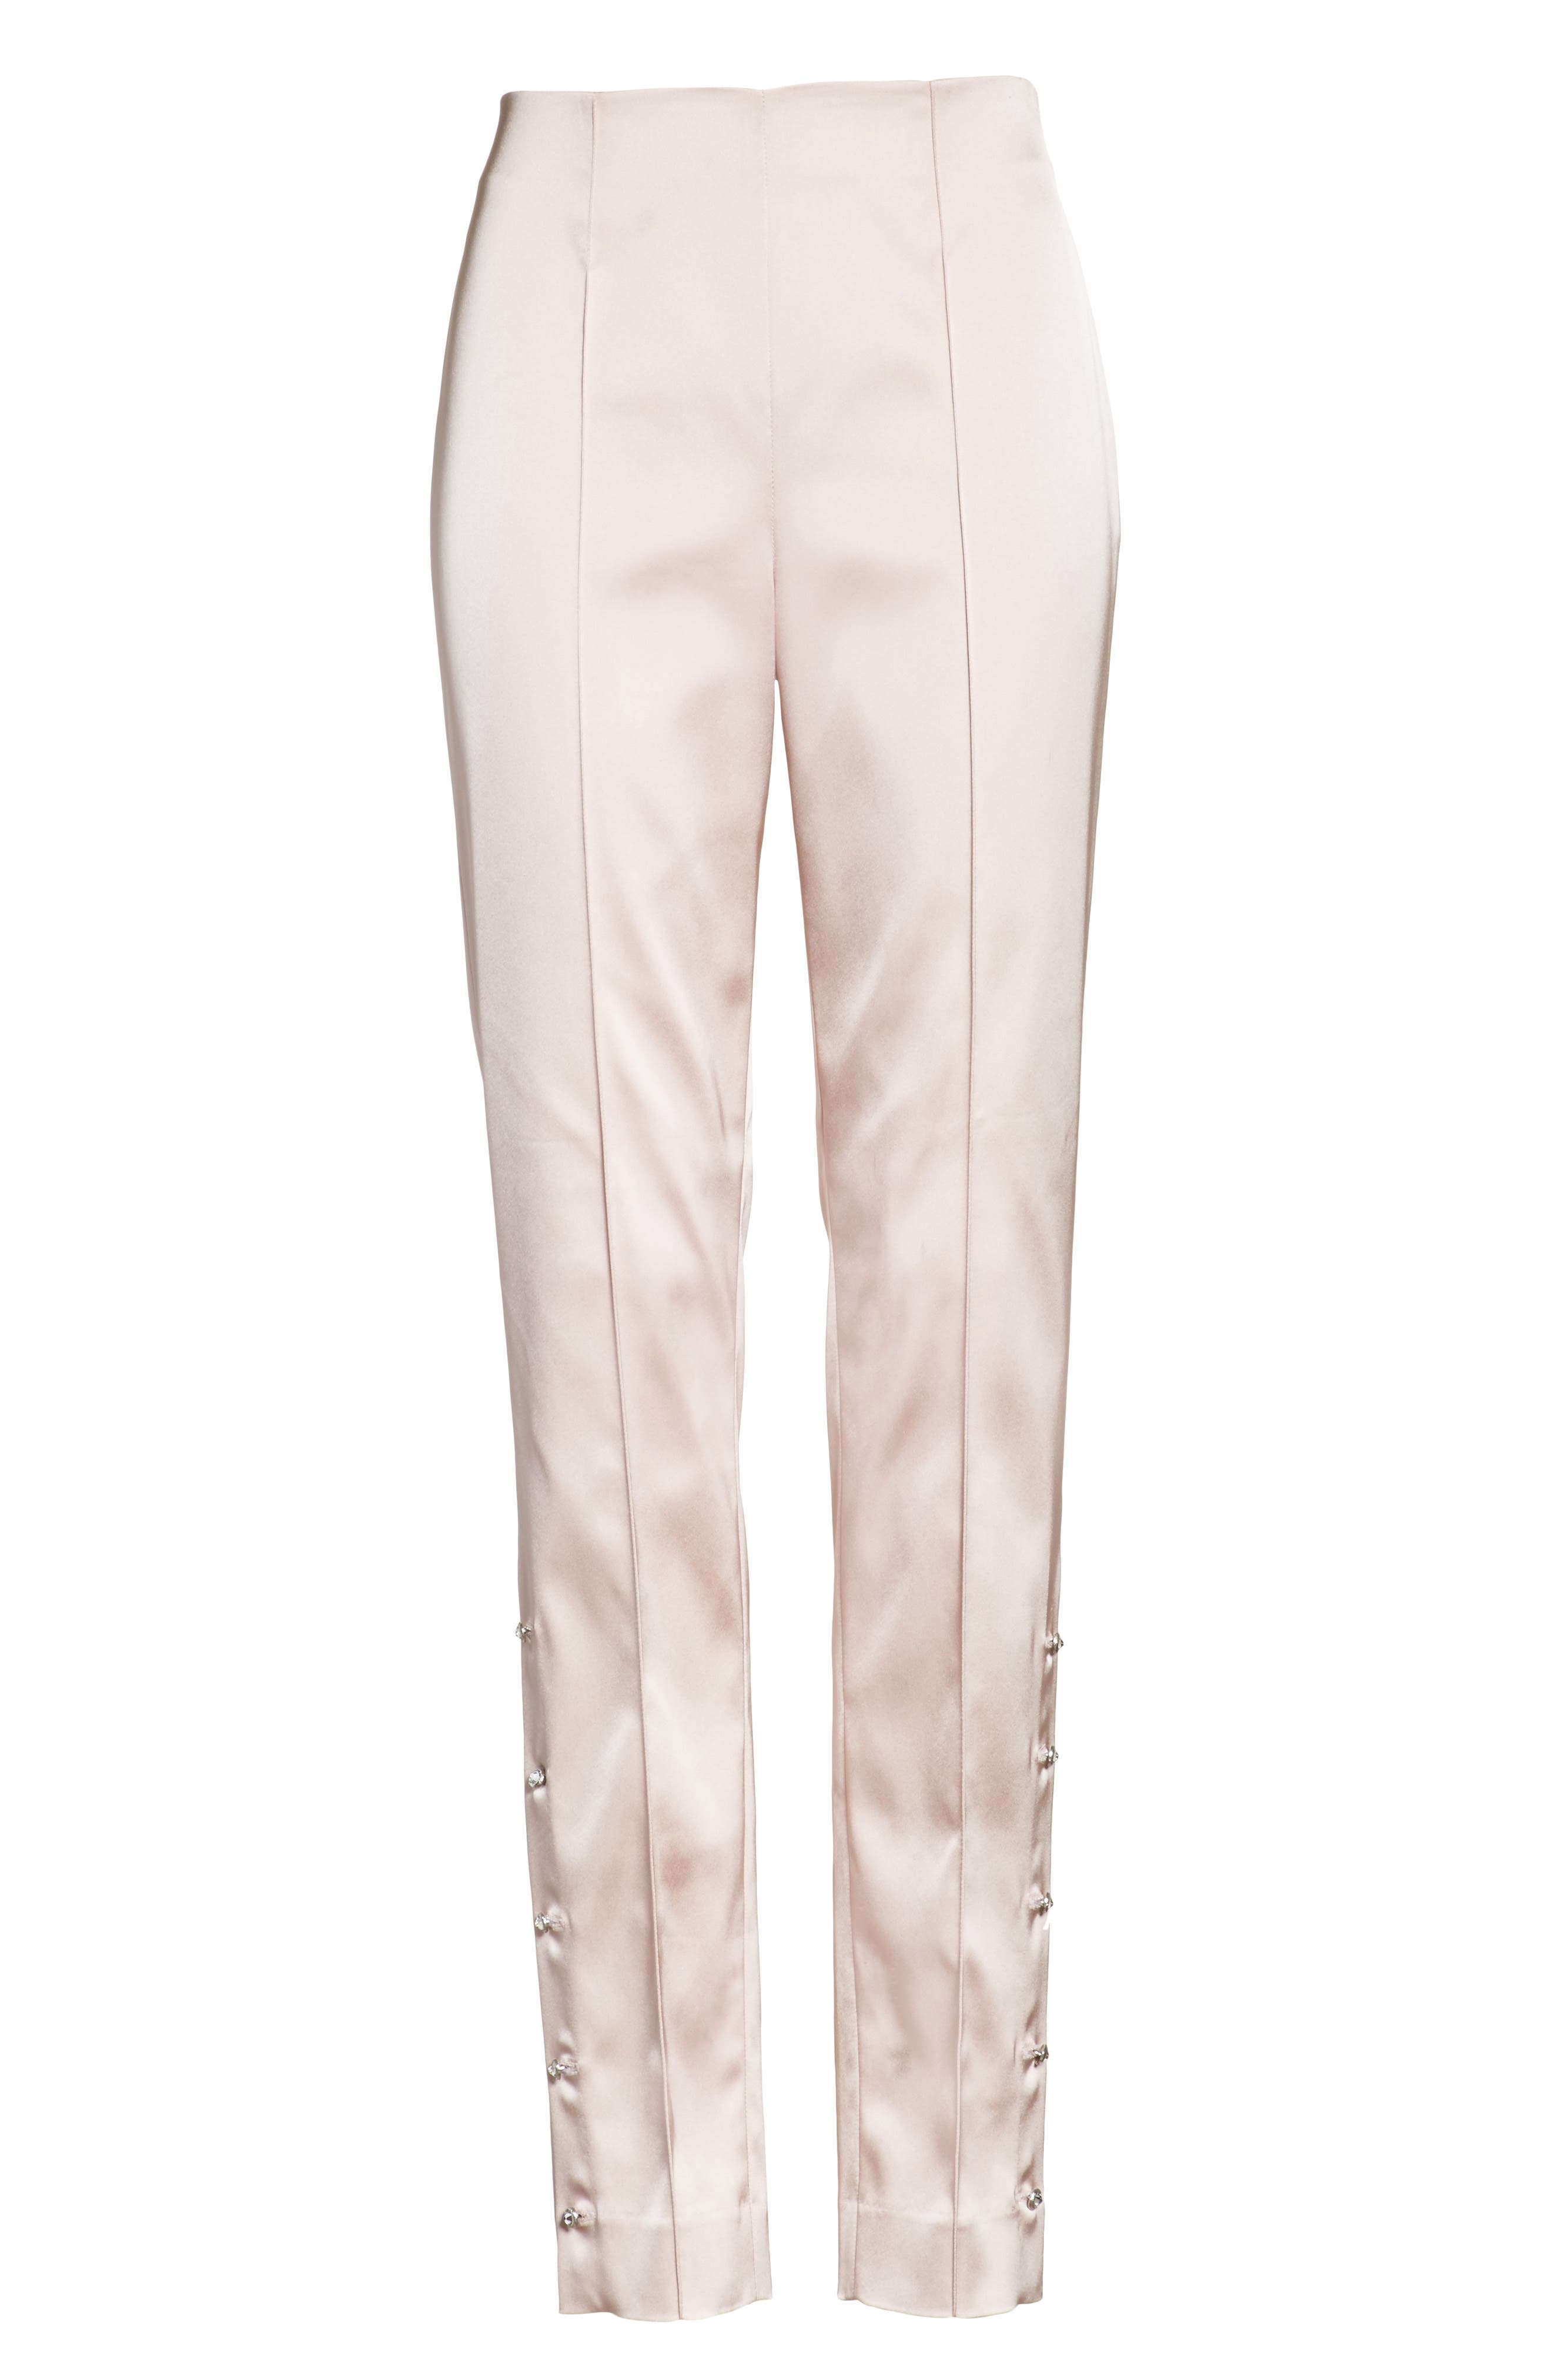 Stretch Satin Ankle Pants,                             Alternate thumbnail 6, color,                             680